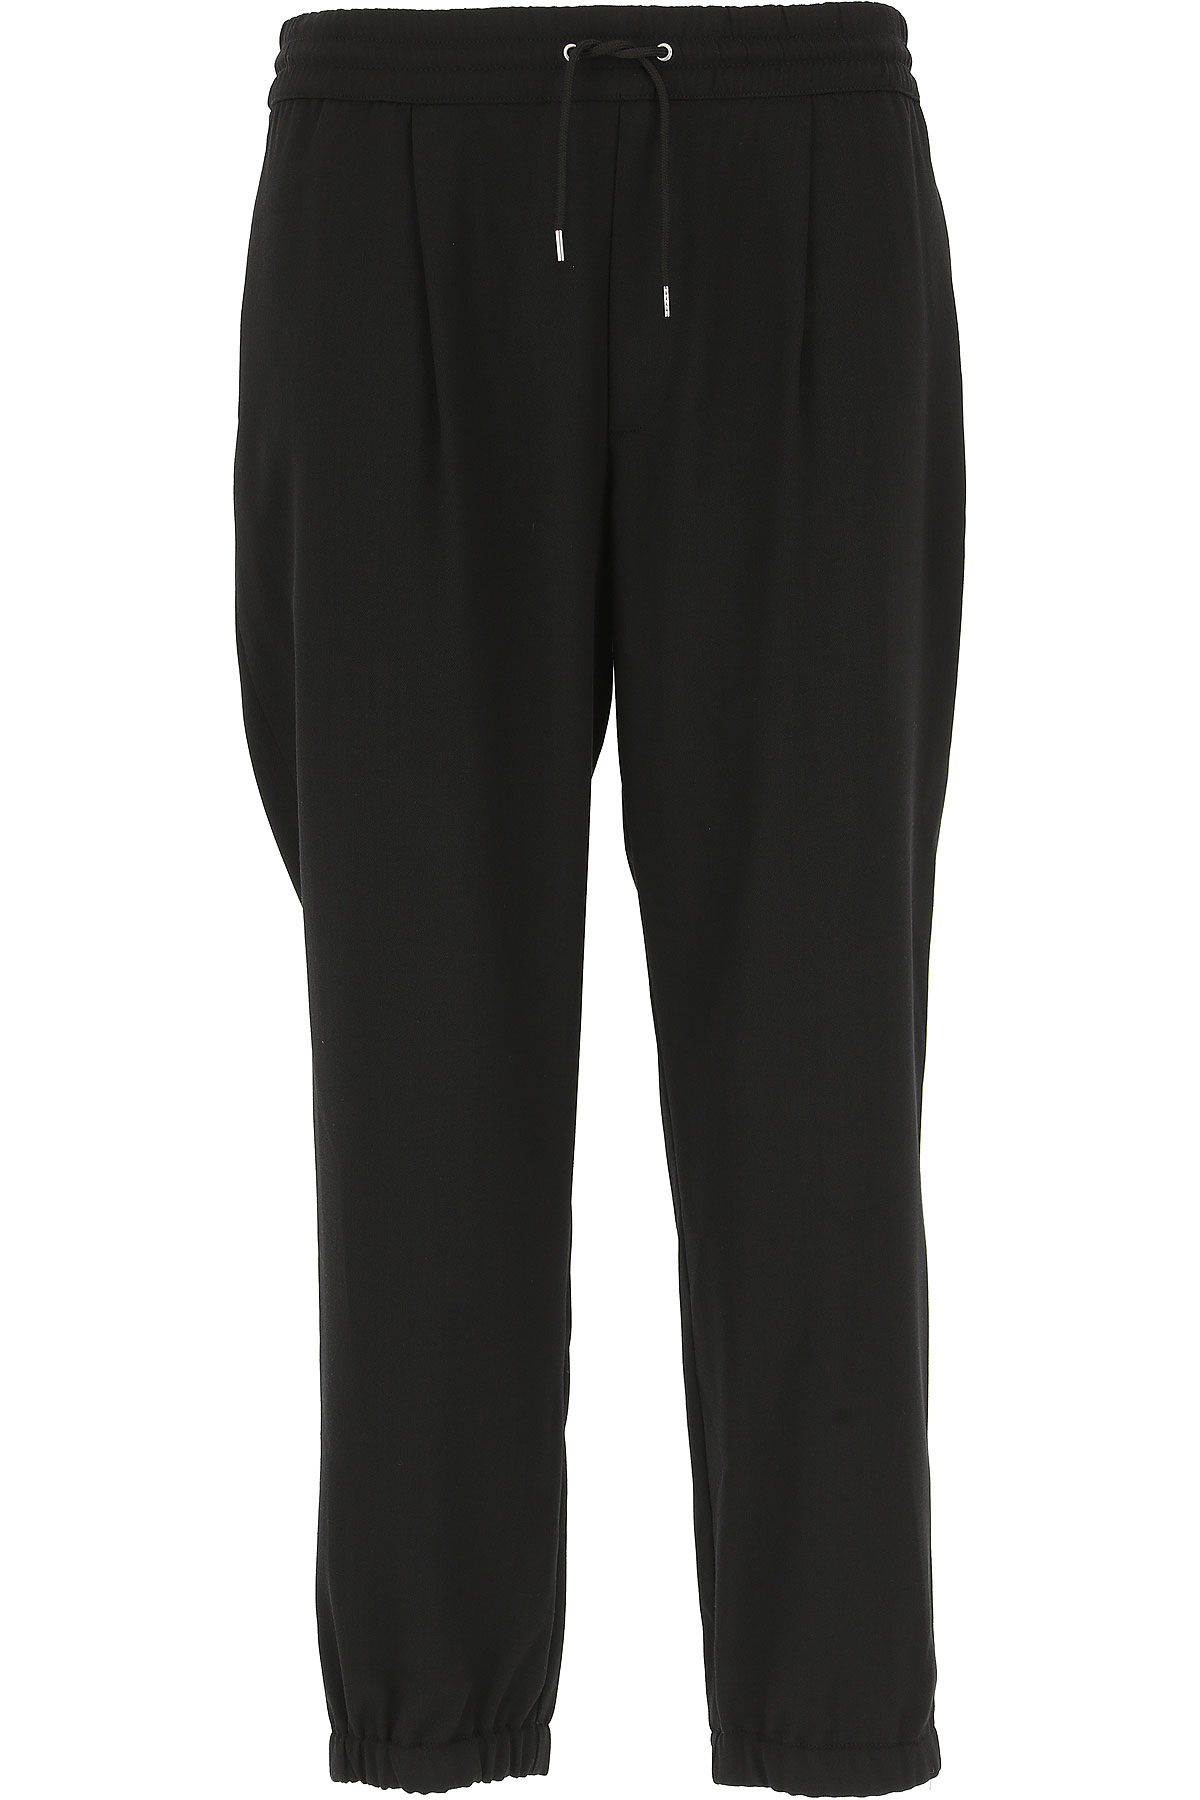 Alexander McQueen McQ Pants for Men On Sale in Outlet, Black, polyester, 2019, 30 32 34 36